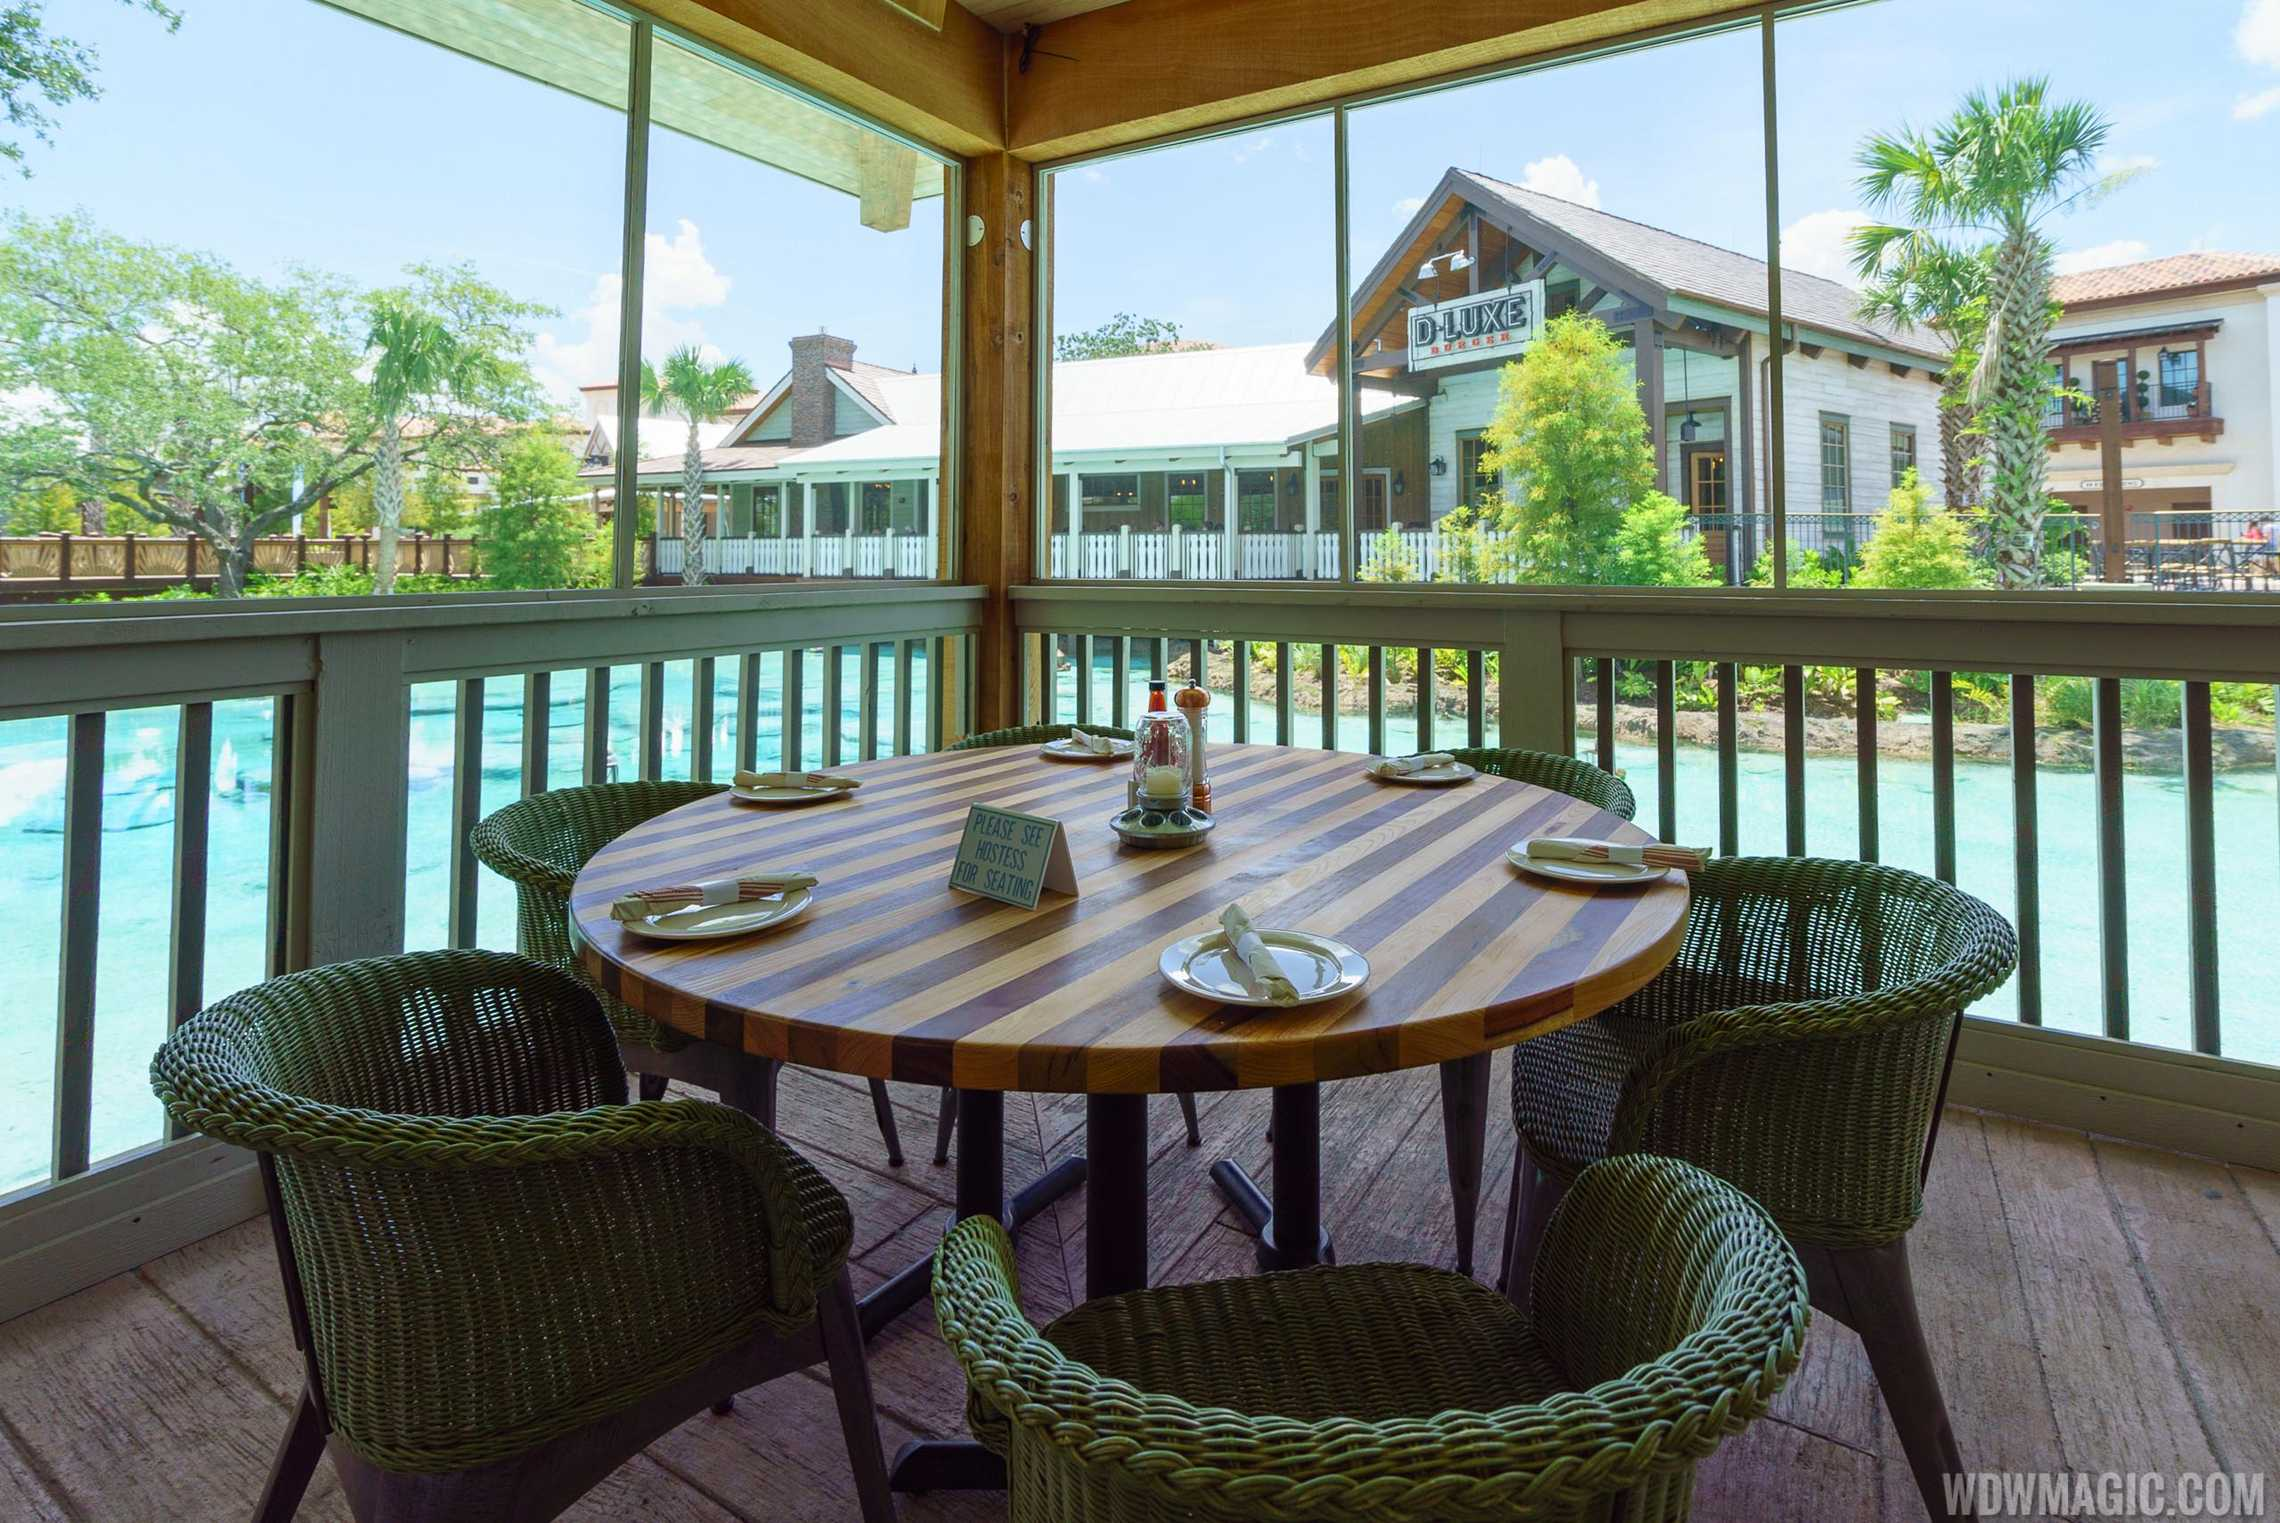 Homecoming: Florida Kitchen and Shine Bar outdoor seating with views of the spring